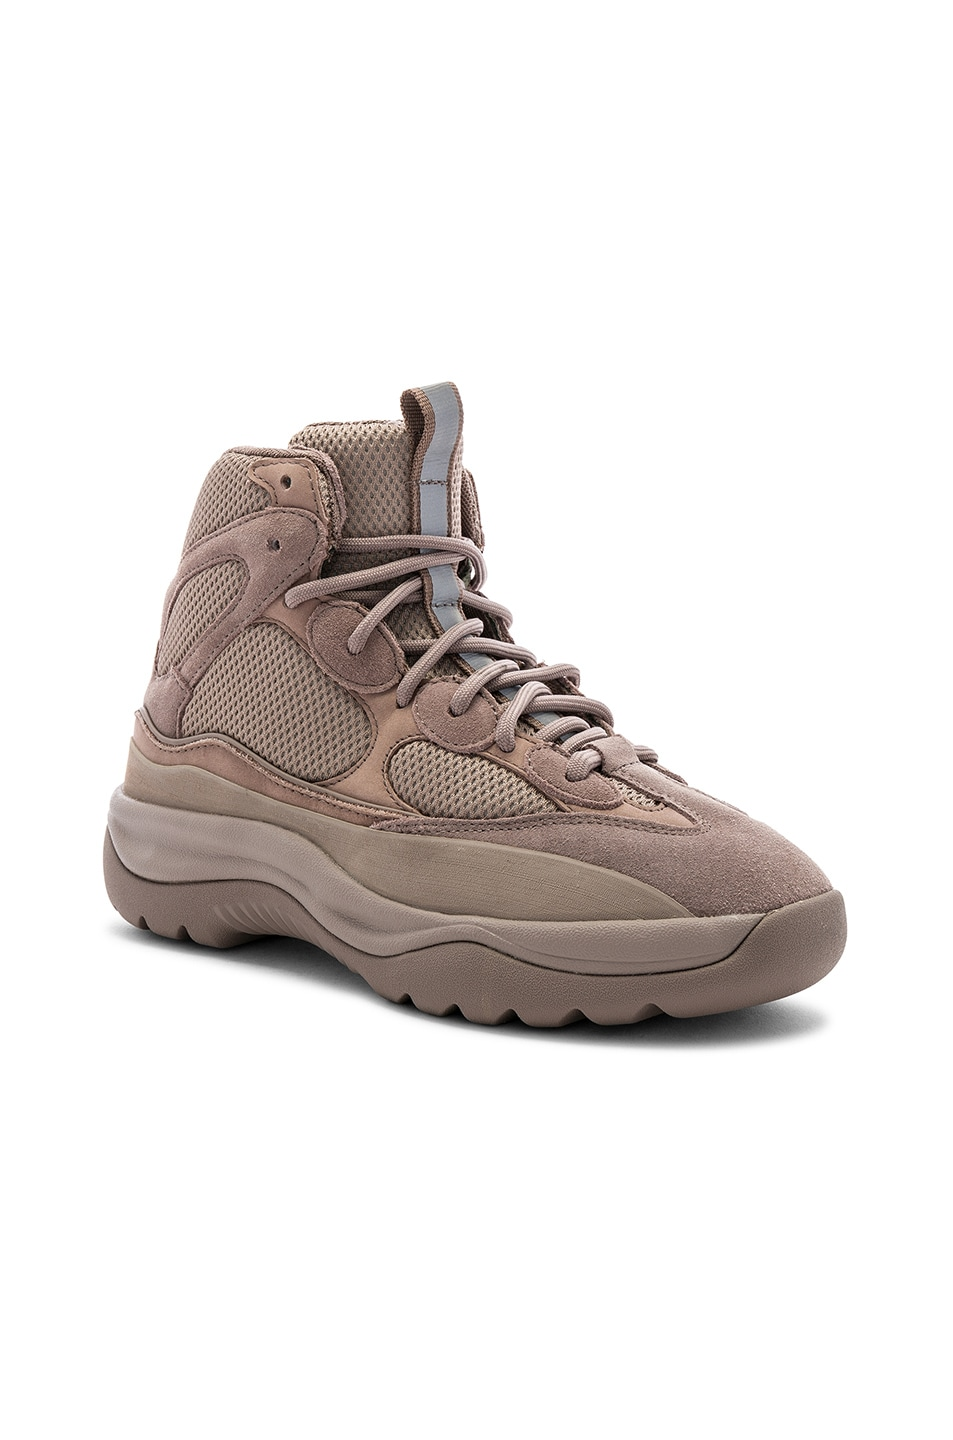 2f46fa27d Image 1 of YEEZY Season 7 Desert Boot in Cinder